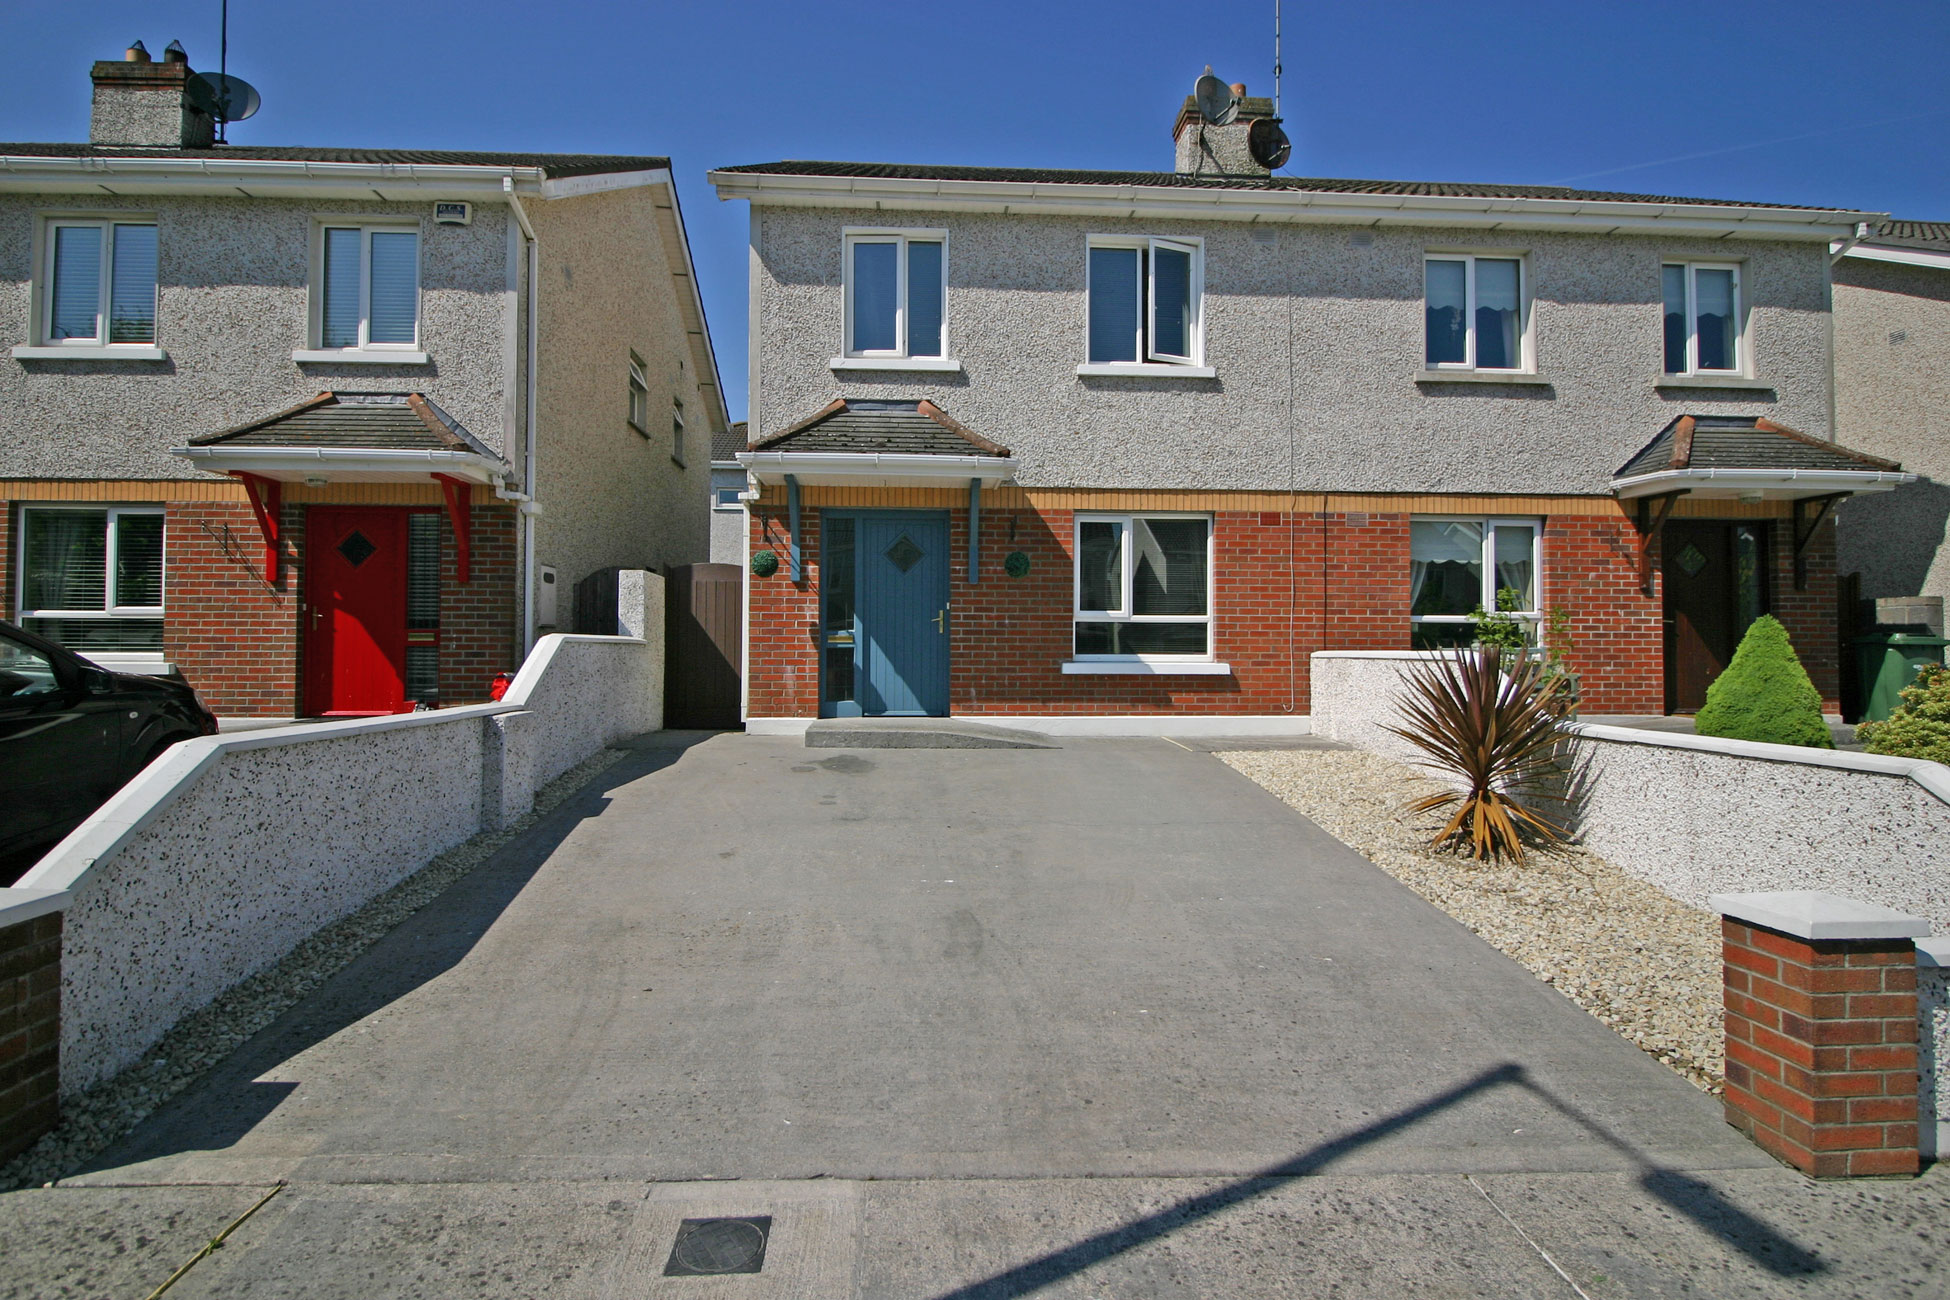 57 Townley Manor, Tullyallen, Drogheda, Louth